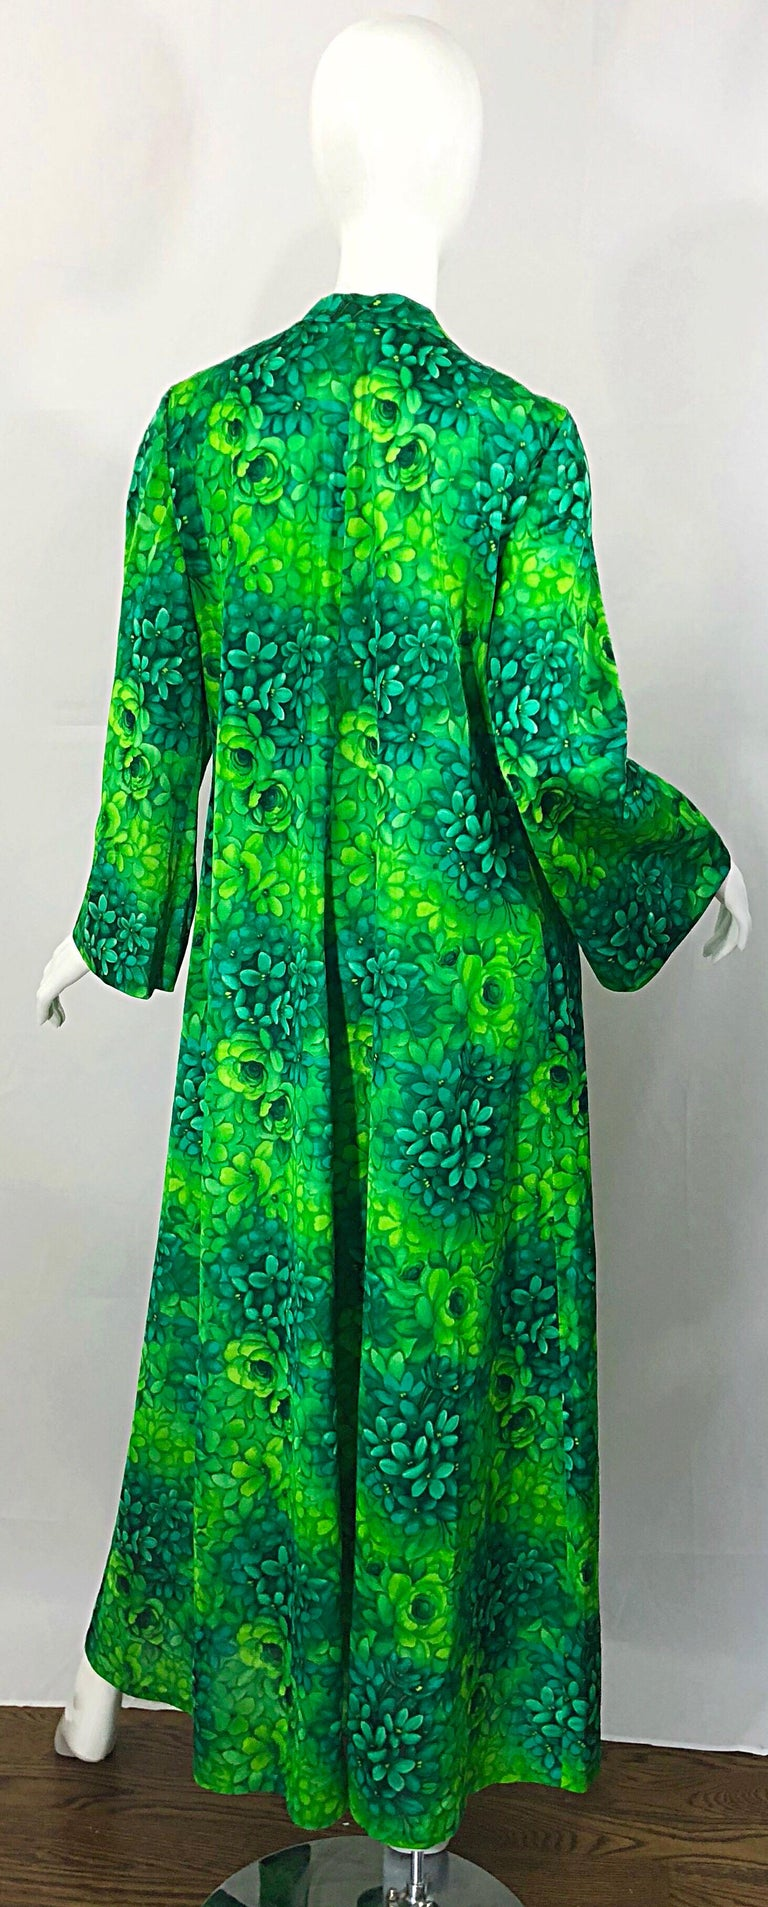 Amazing 1970s Neon + Kelly Green Abstract Flower Print 70s Vintage Caftan Dress For Sale 1